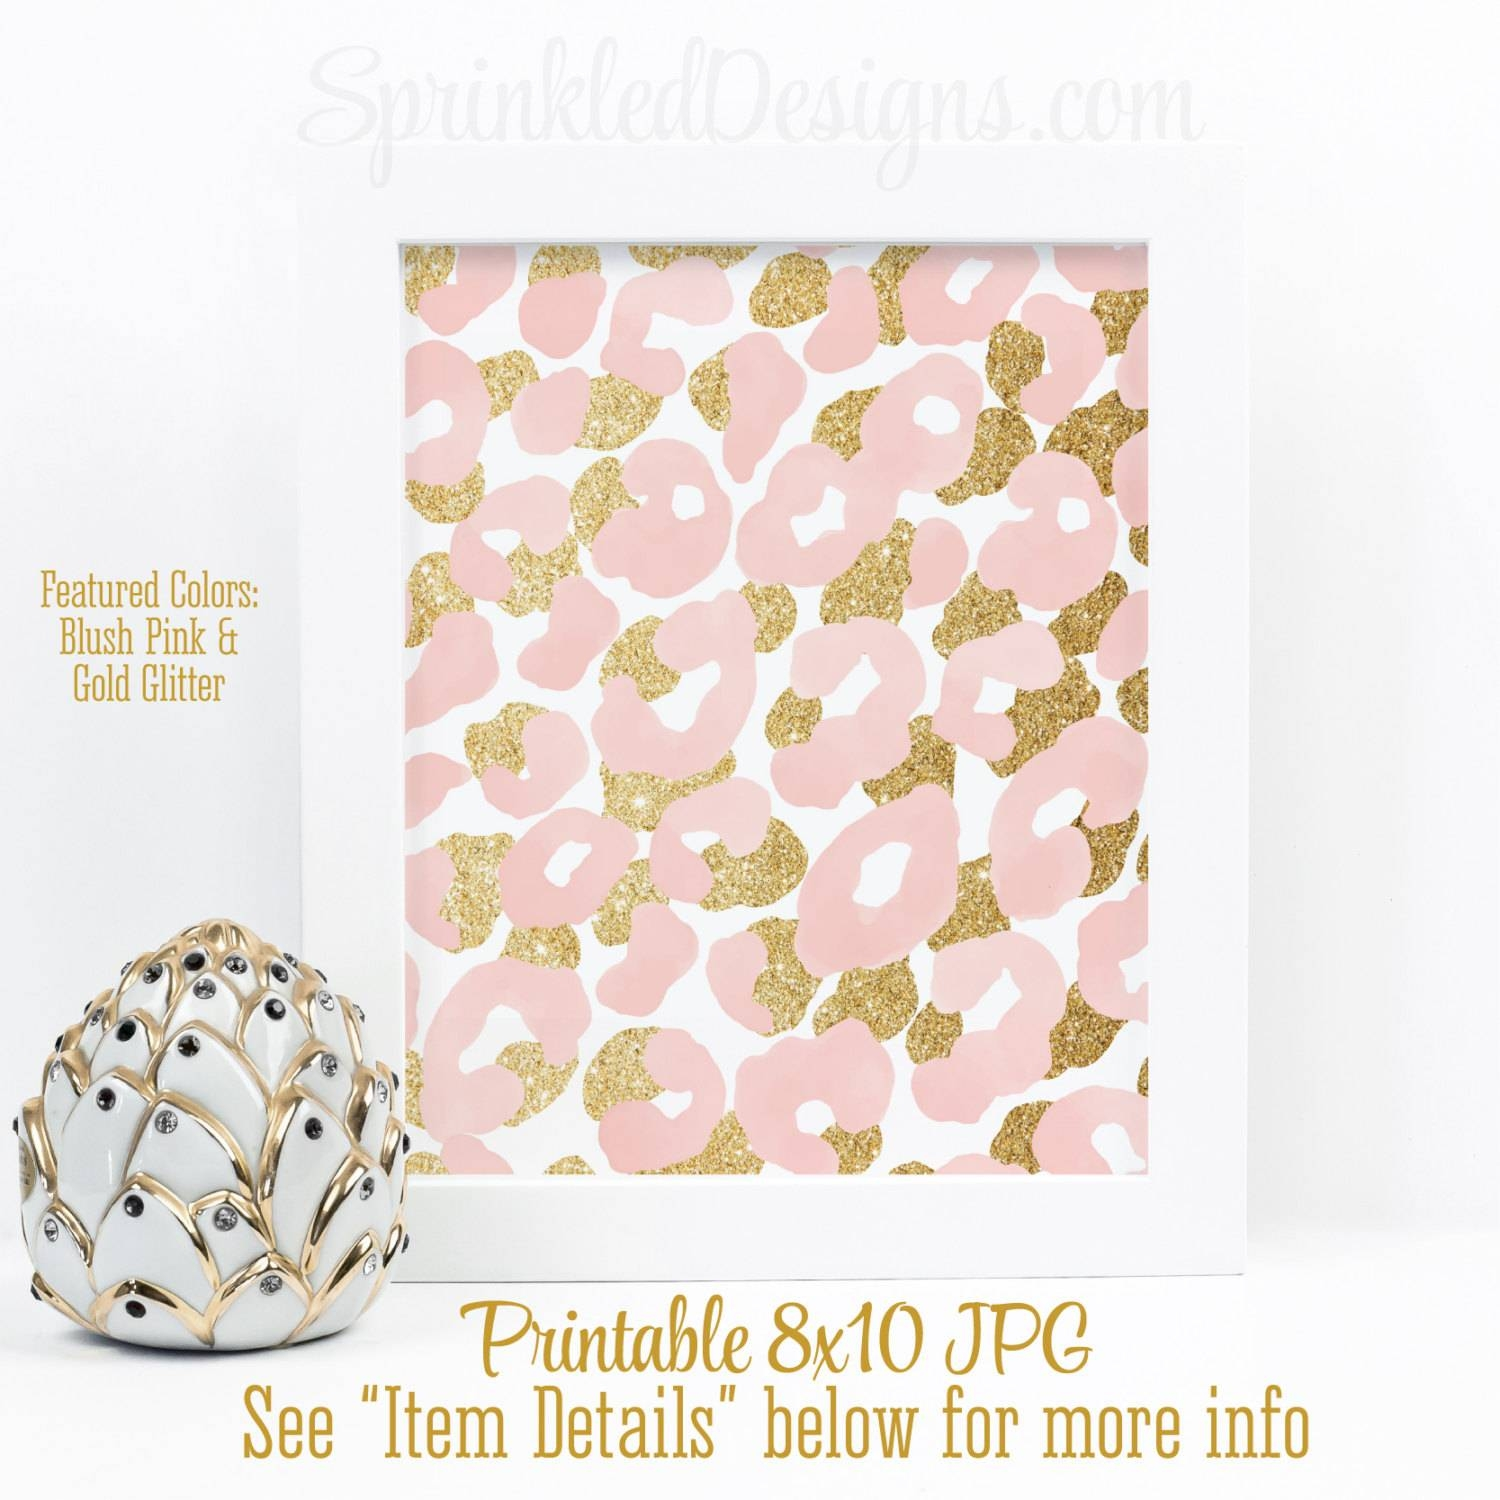 Abstract Art Print Blush Pink Gold Glitter Watercolor Pertaining To Newest Leopard Print Wall Art (View 11 of 25)